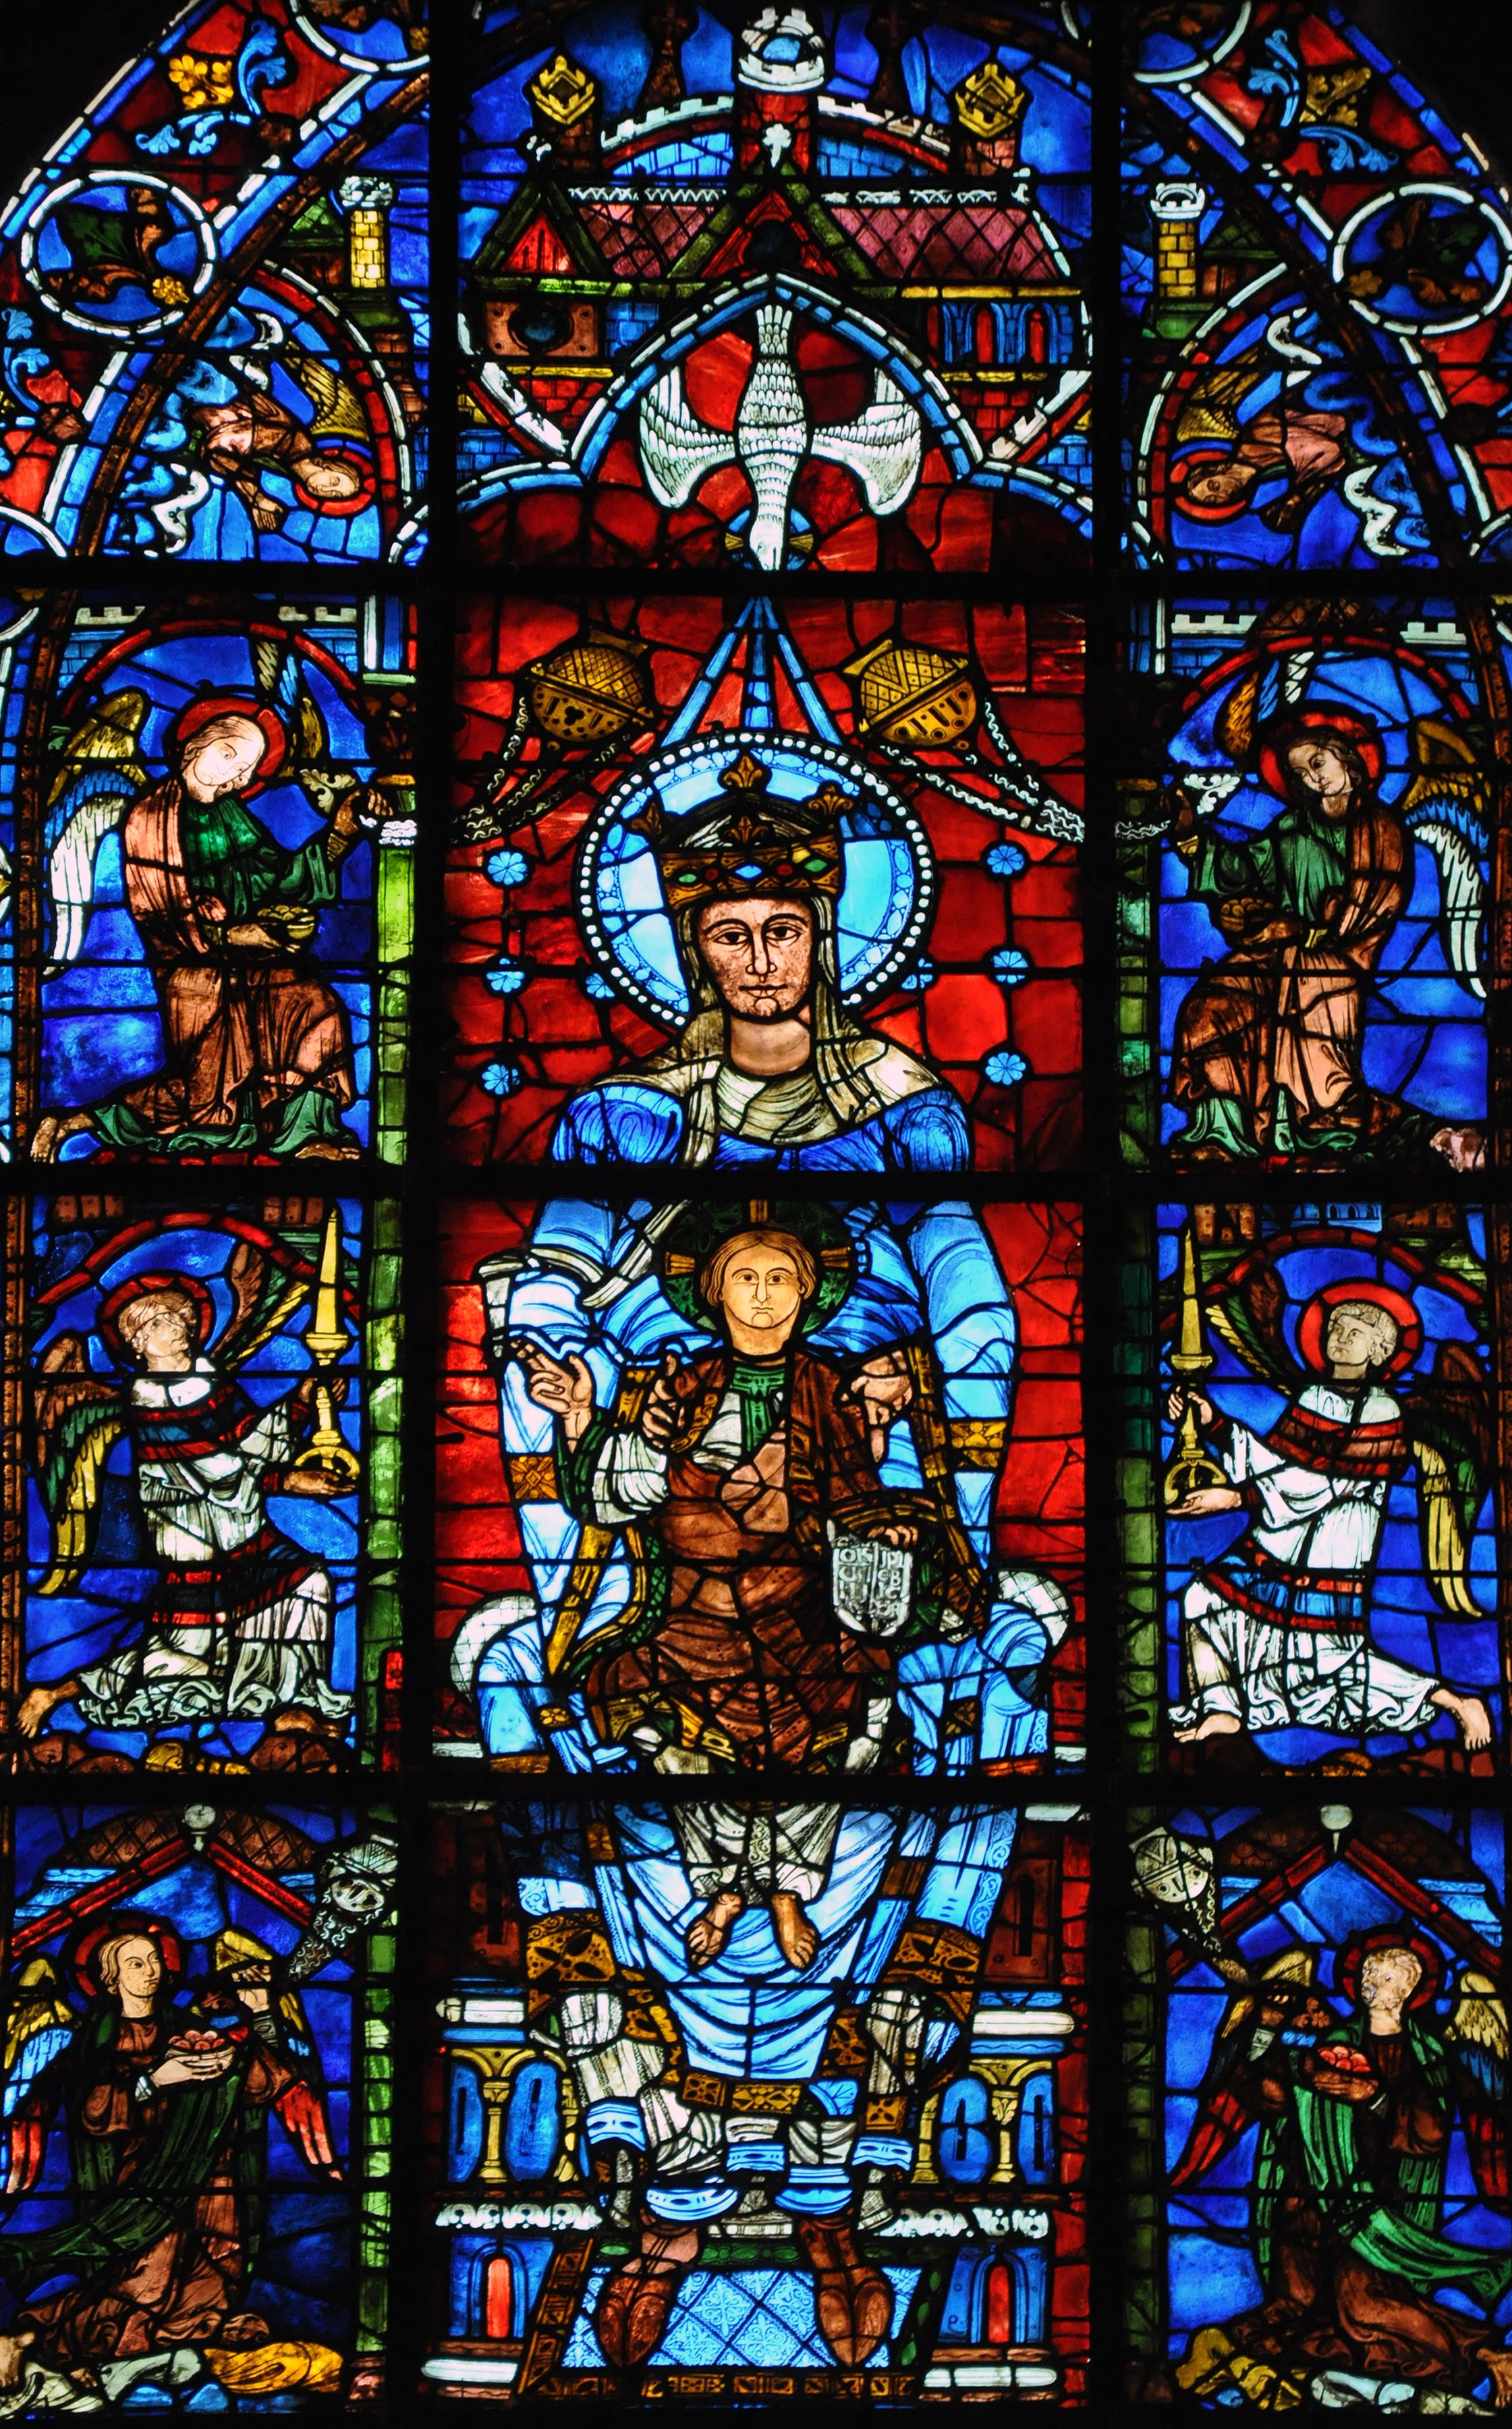 Notre Dame De La Belle Verriere Window Chartres Cathedral France Gothic Europe Original Construction C 1145 1155 CE Reconstructed